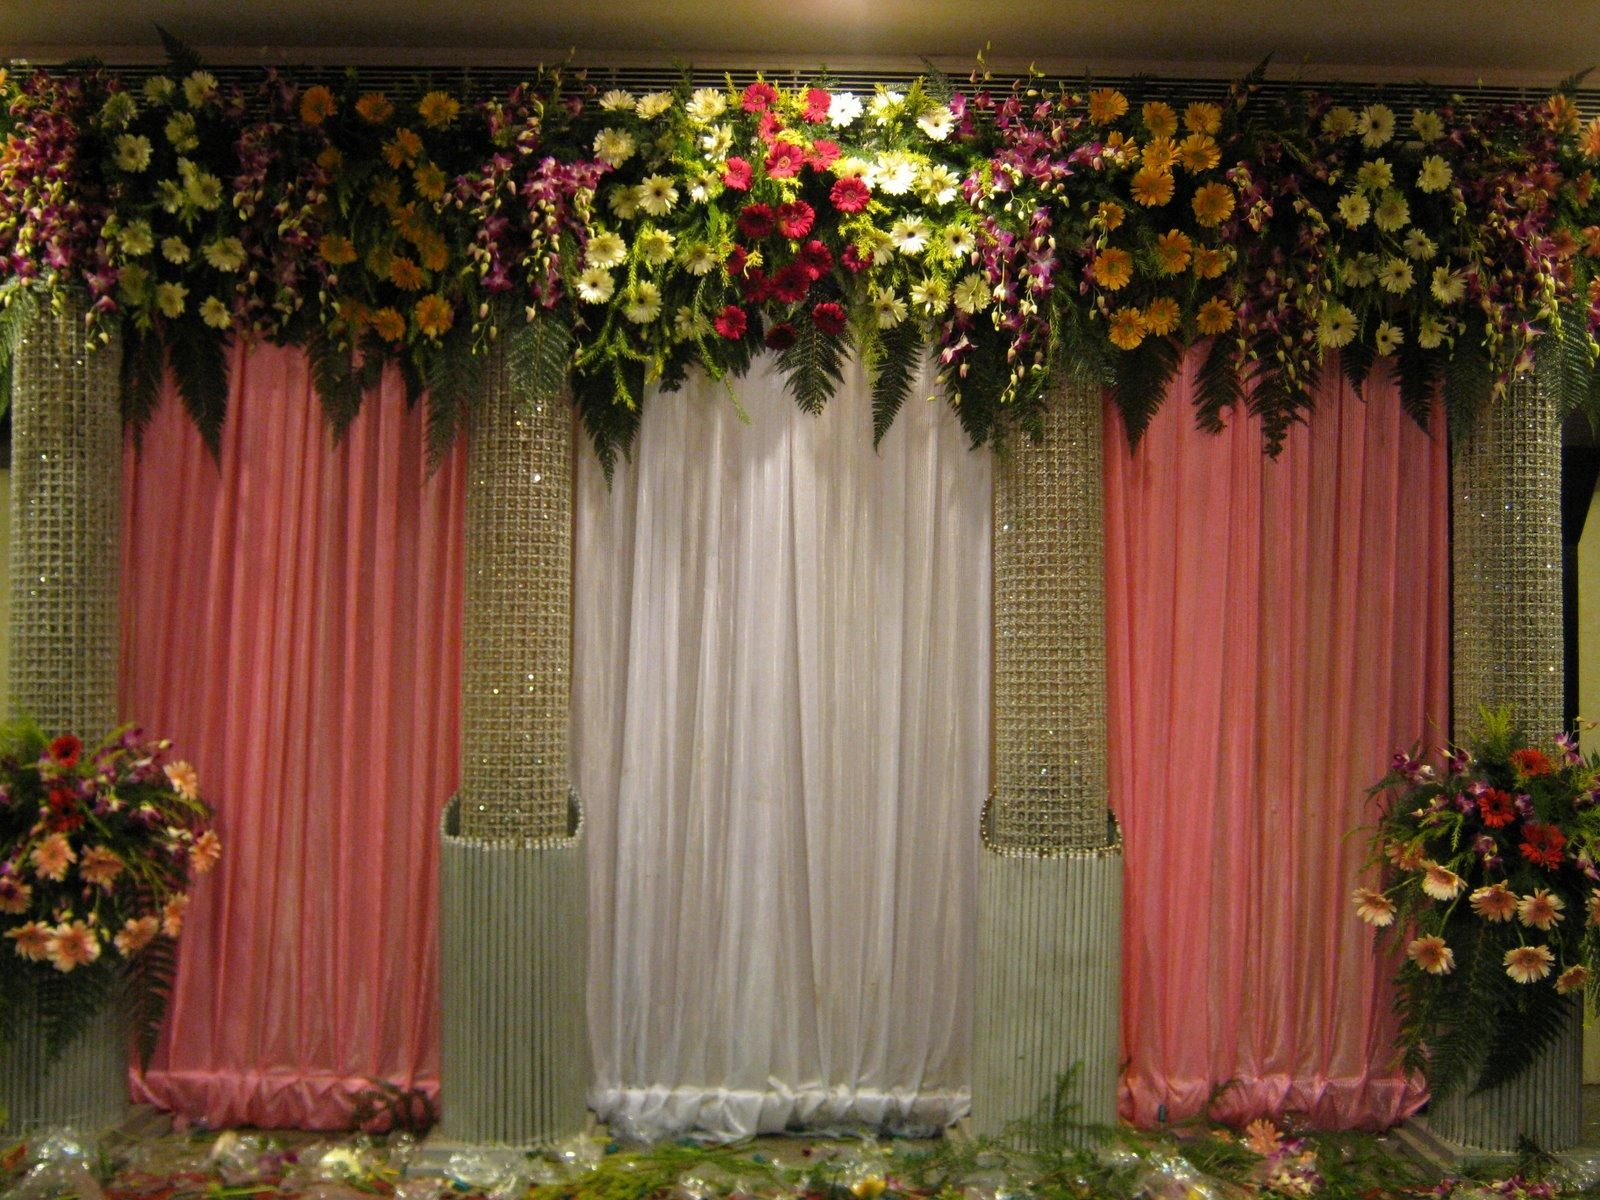 Wedding stage decoration without flowers flower wedding stage decor  vyasa puja backdrop ideas  Pinterest